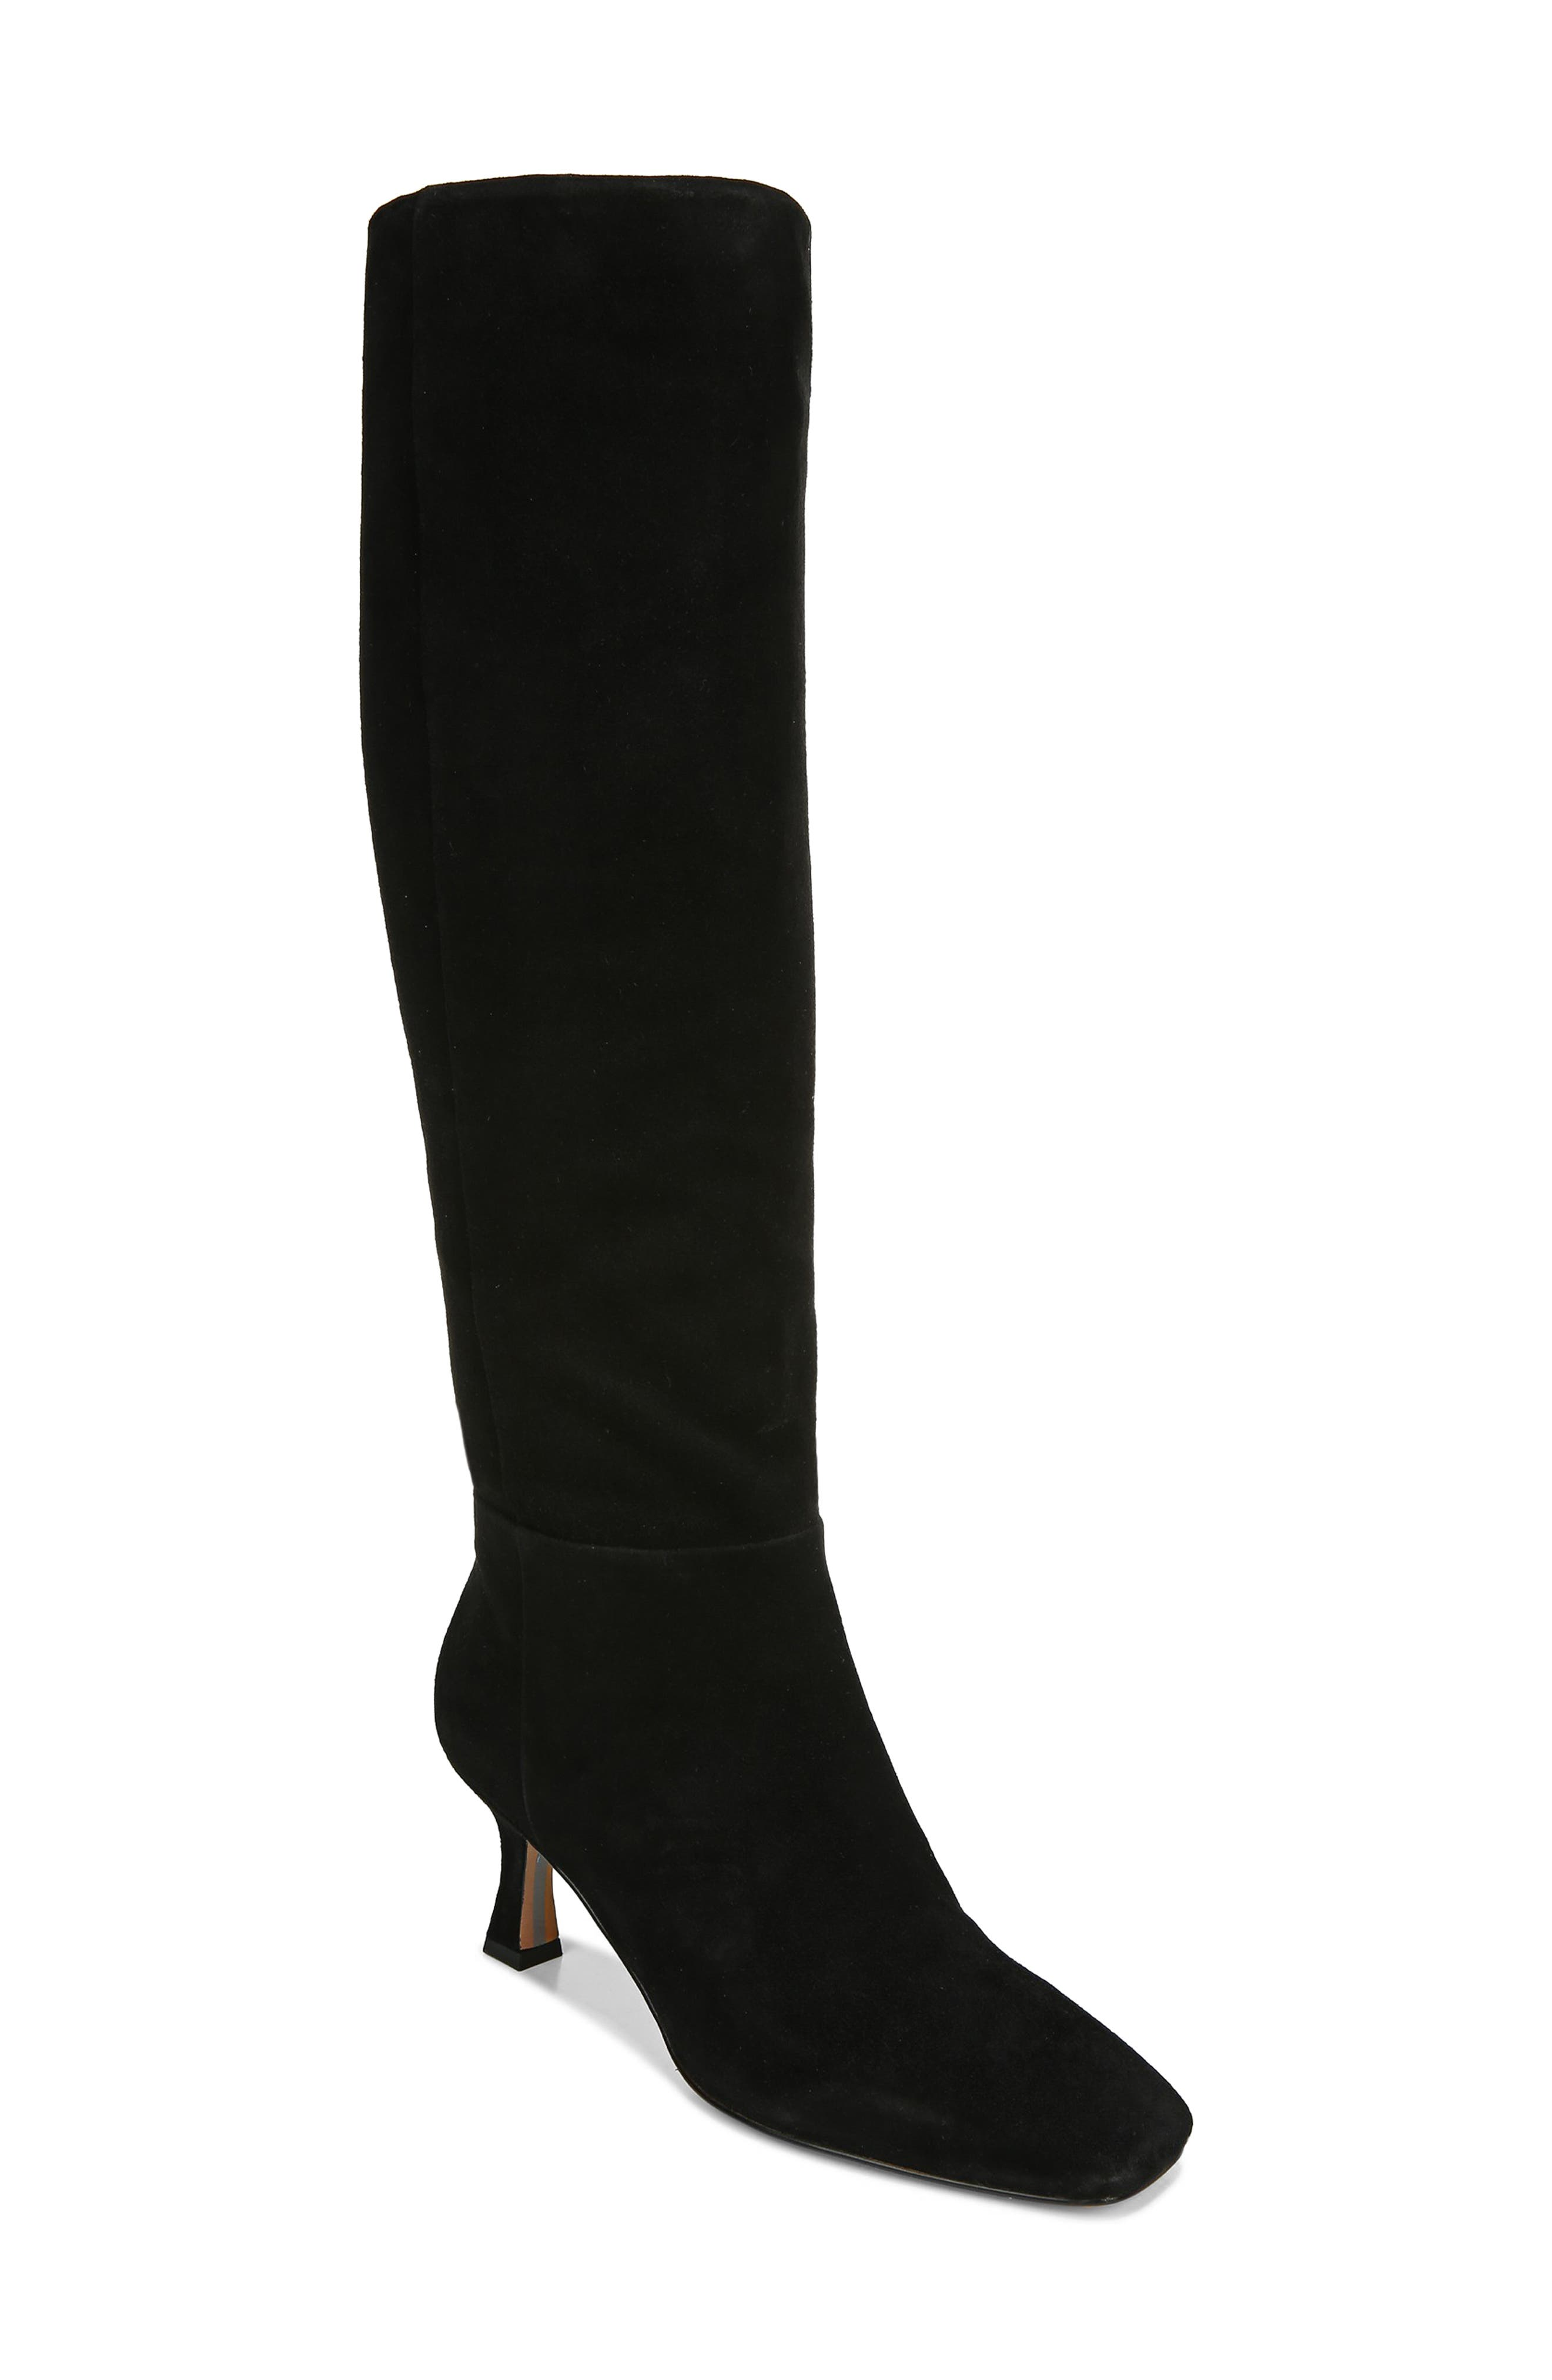 A flared heel adds an extra touch of finesse to a knee-high boot that\\\'s a dramatic addition to your look. Style Name: Sam Edelman Lillia Knee High Boot (Women). Style Number: 6084894. Available in stores.